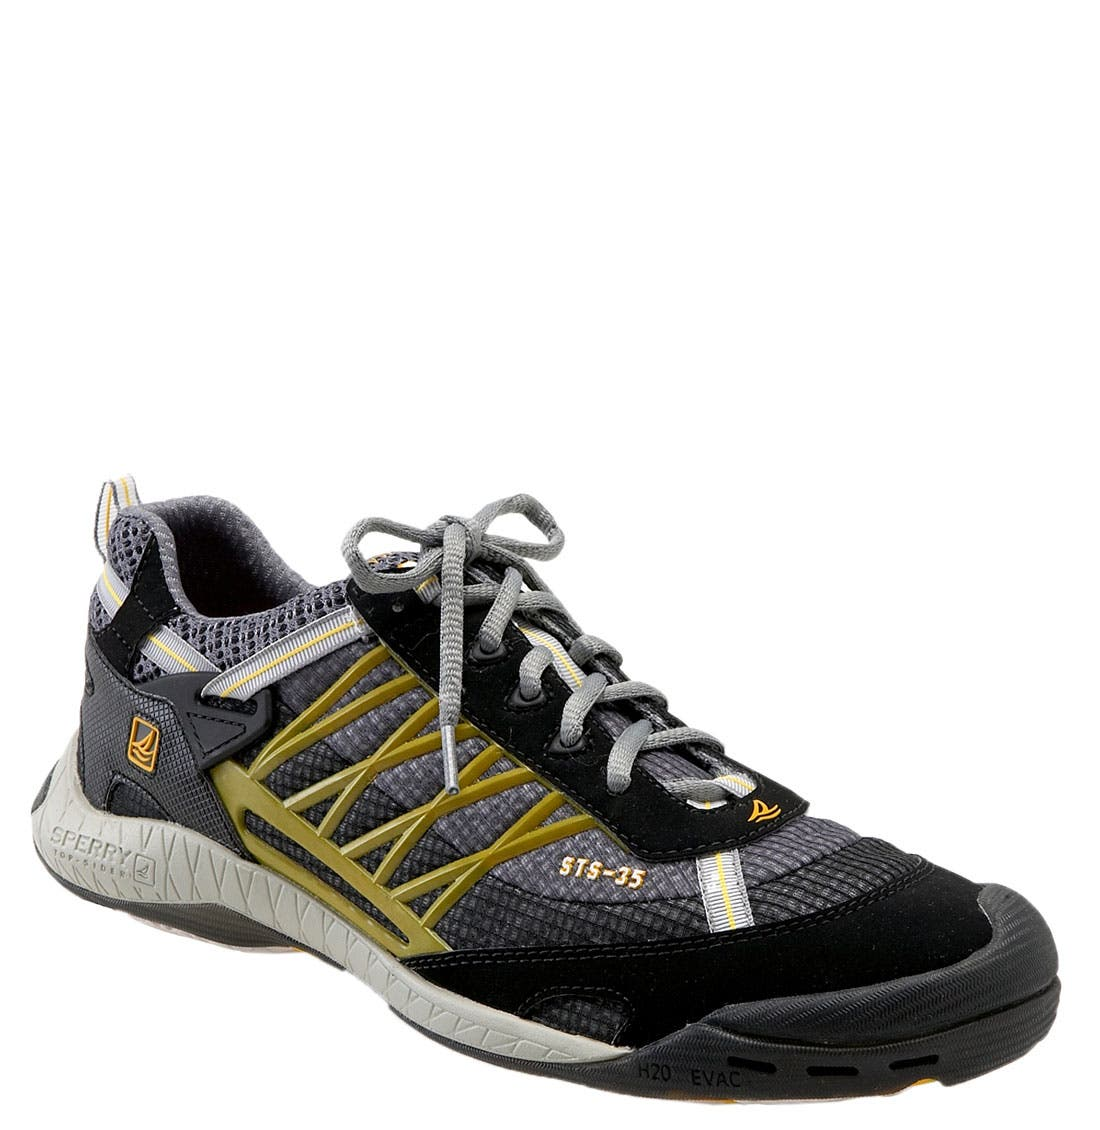 Main Image - Sperry Top-Sider® 'Ventus' Athletic Boat Shoe (Men)